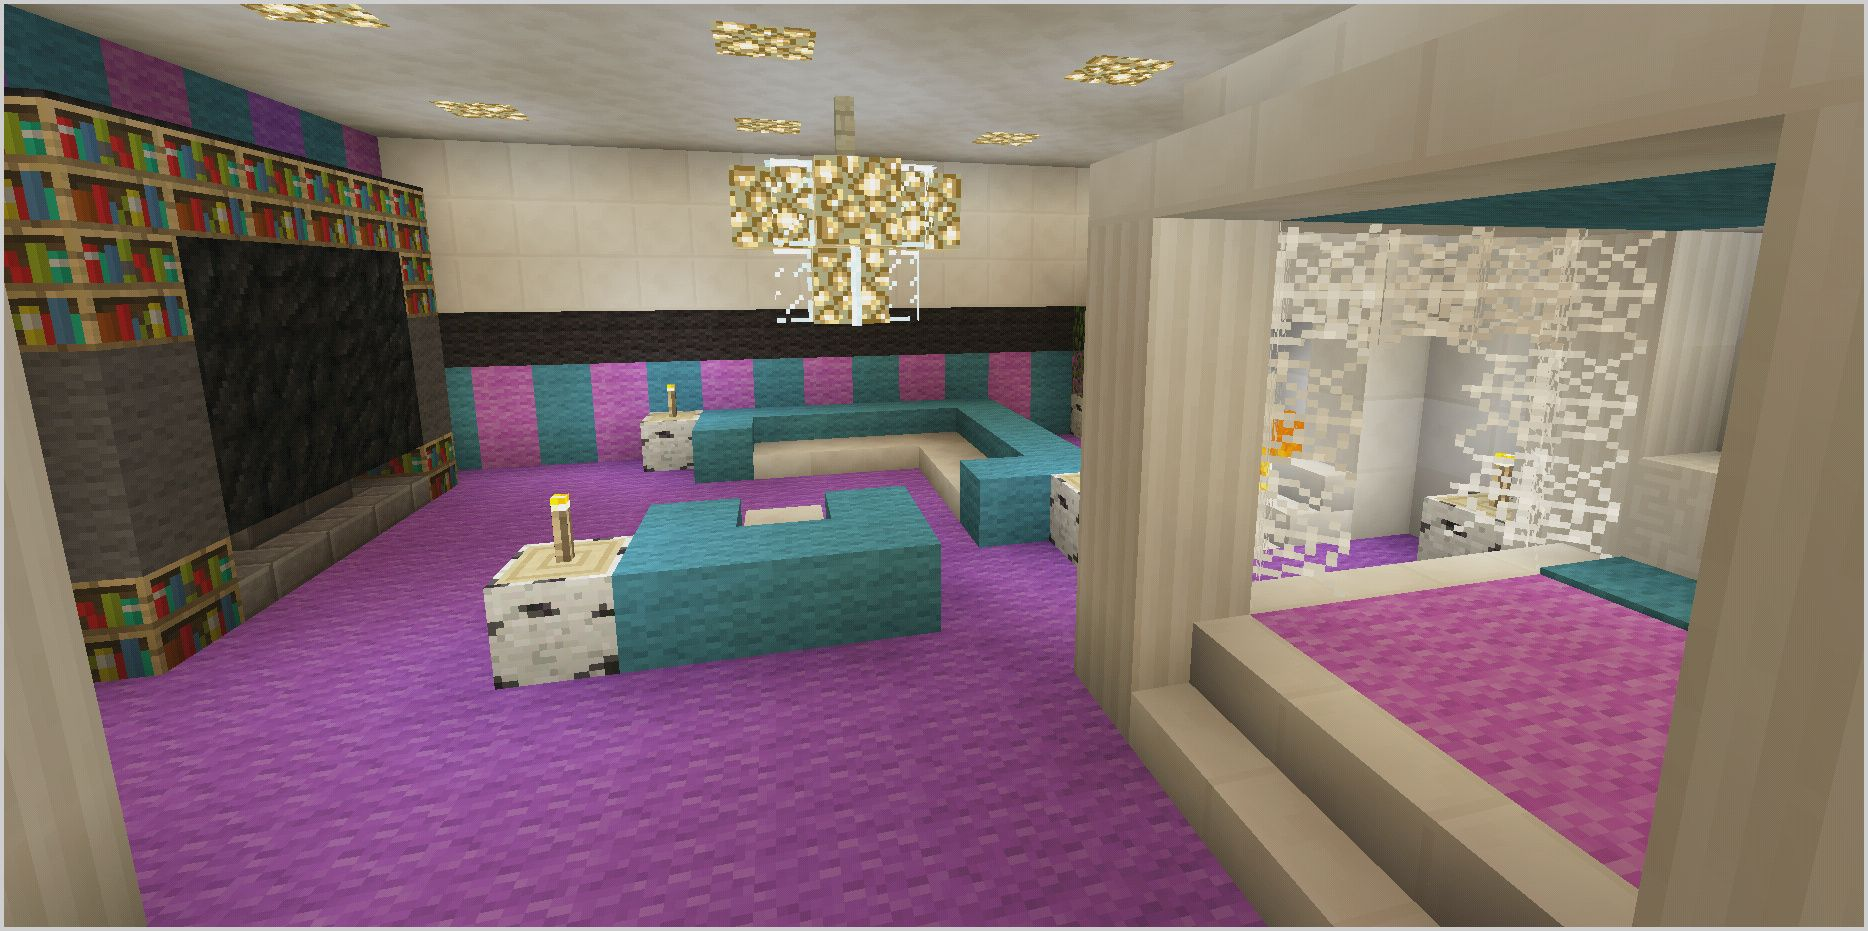 Ideas For Bedrooms In Minecraft In 2020 Minecraft Room Decor Minecraft Bedroom Decor Minecraft Room